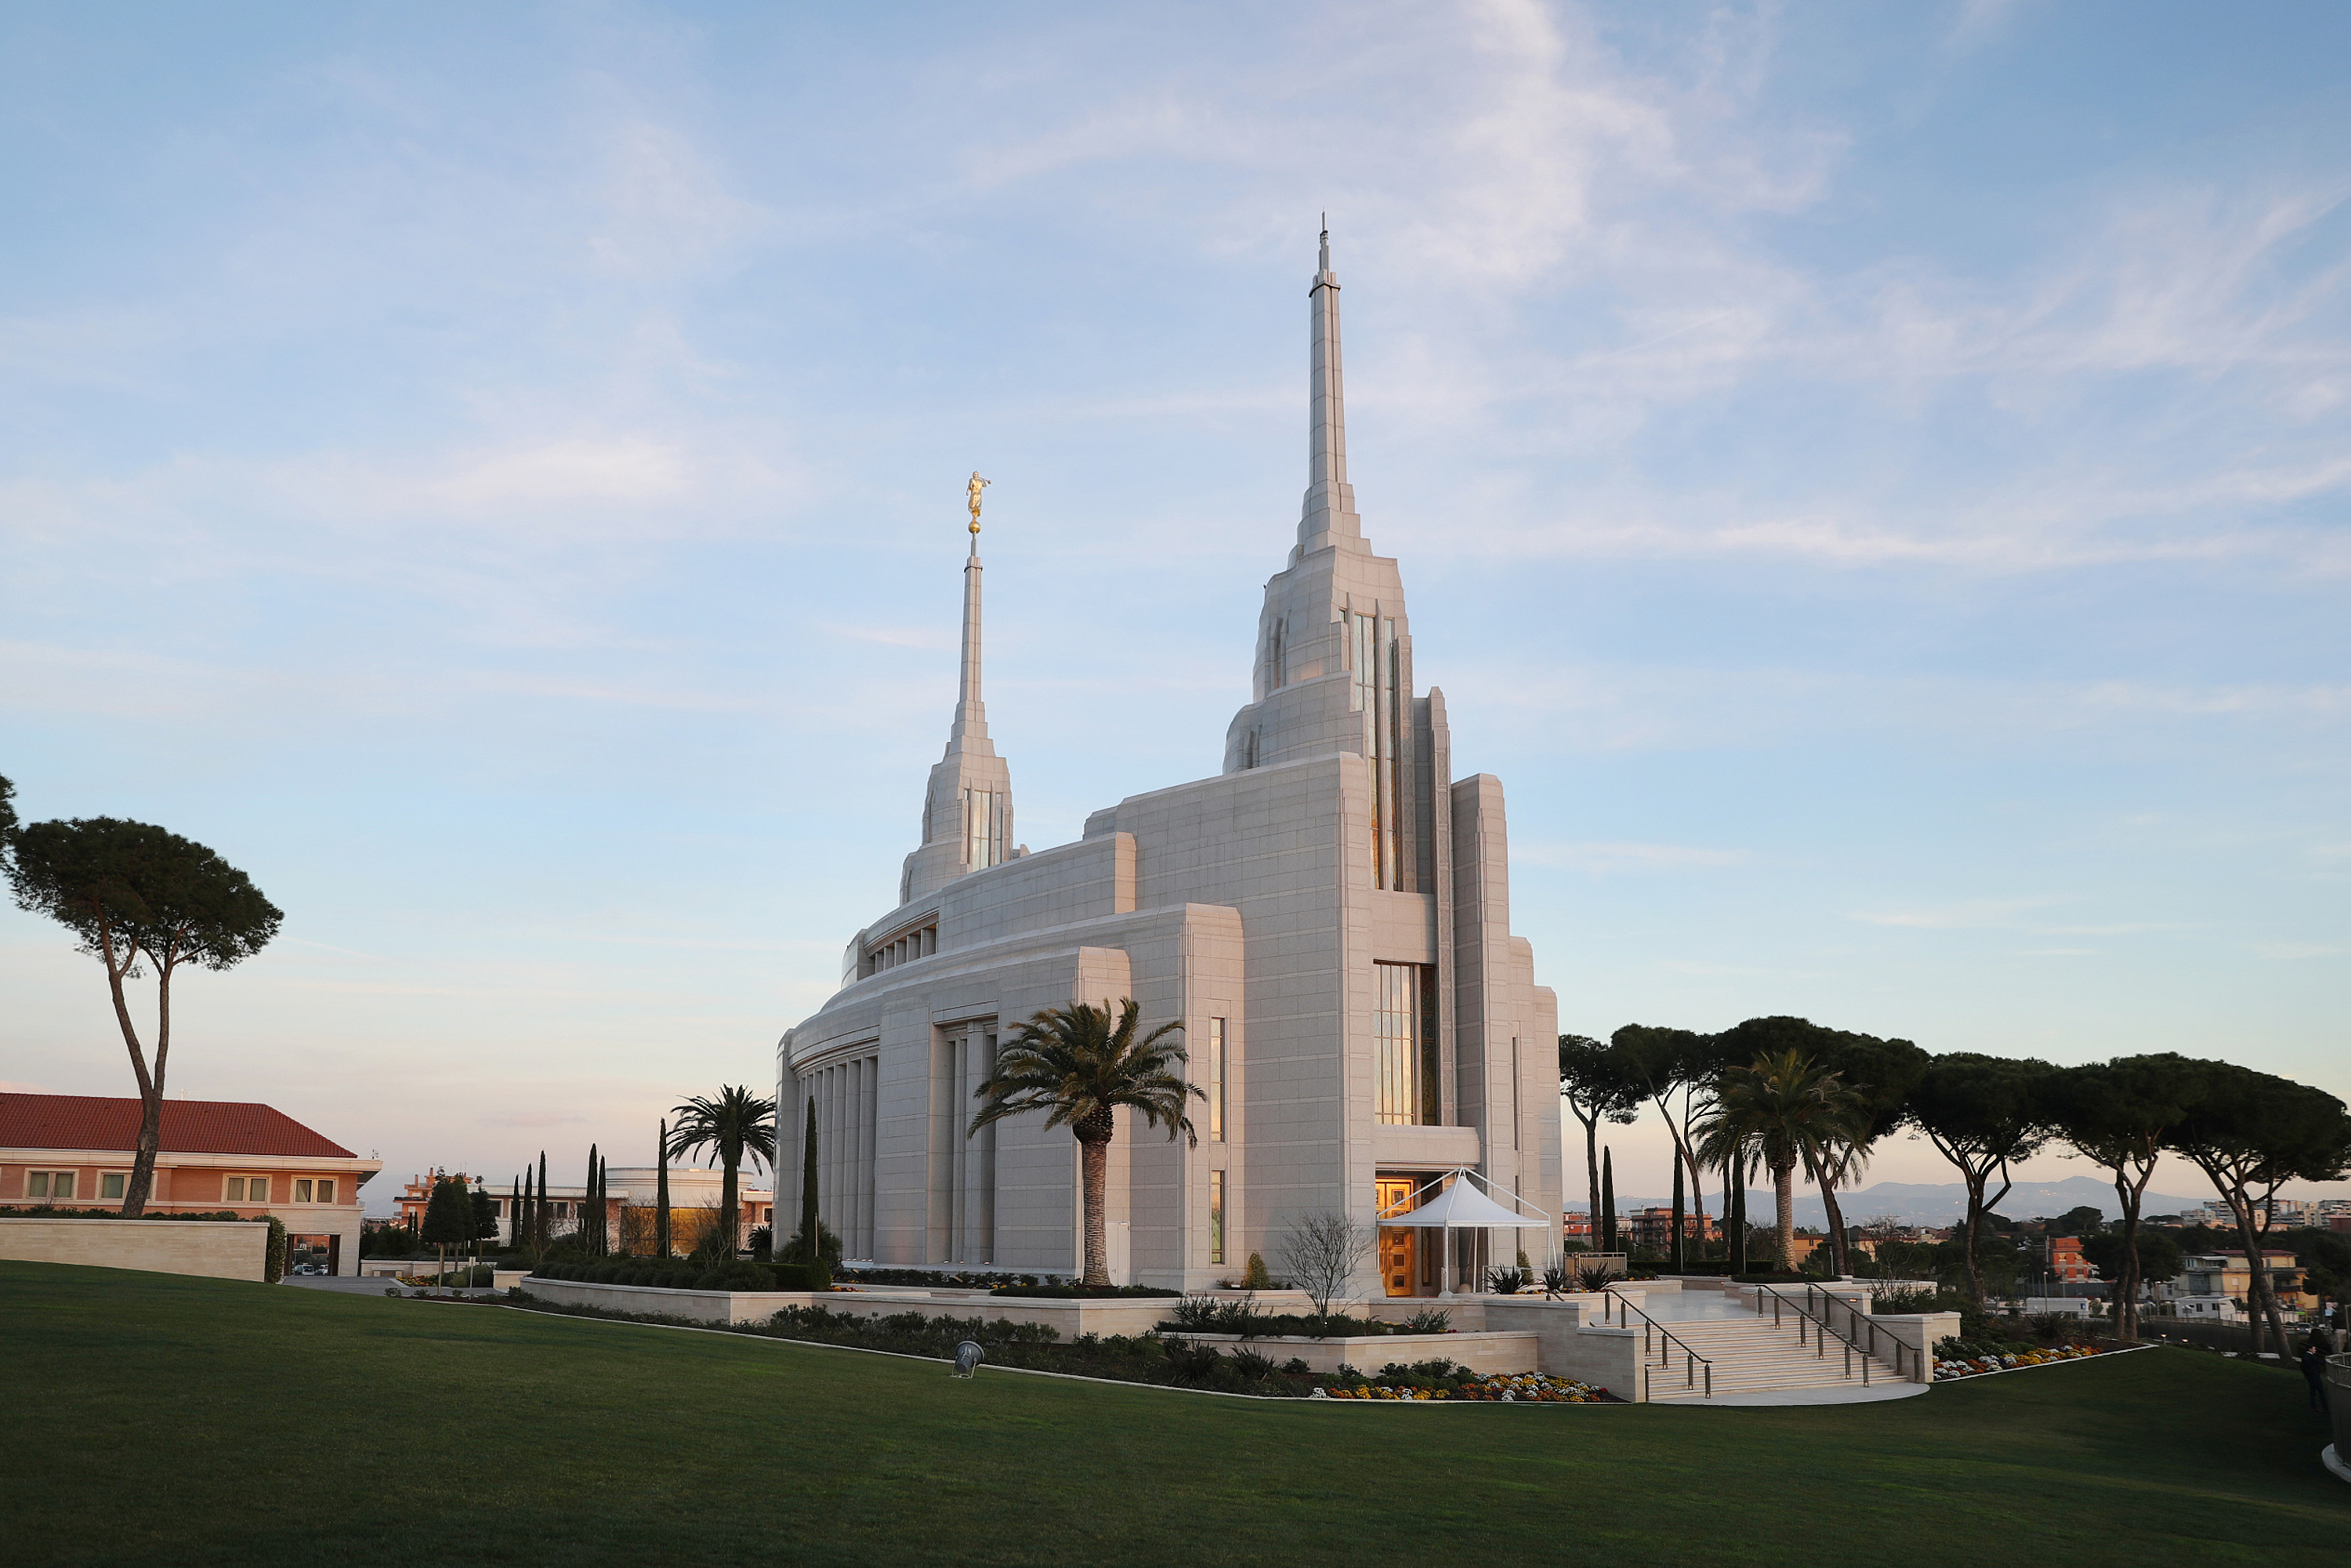 The Rome Italy Temple on a beautiful and warm day in March 9, 2019.